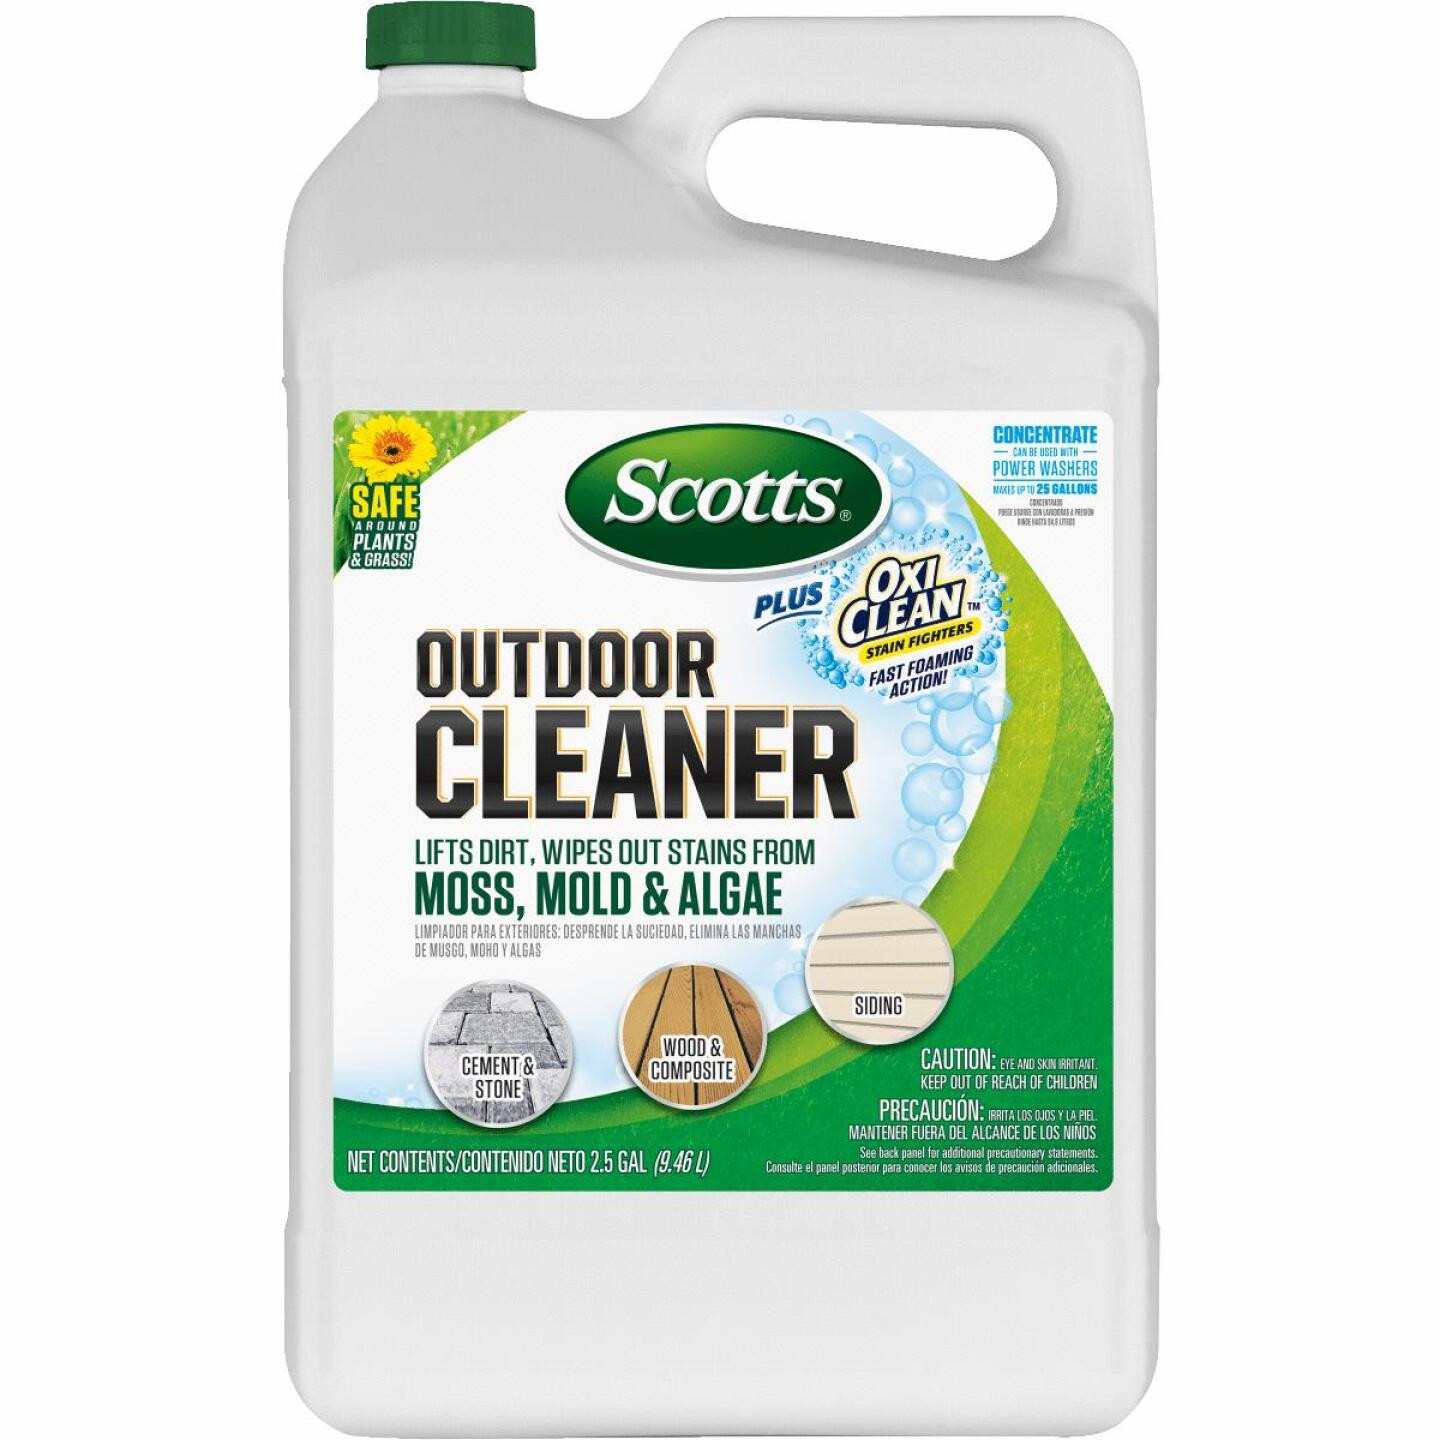 Scotts 2.5 Gal. Concentrate Multi Surface Outdoor Cleaner Plus OxiClean Image 1